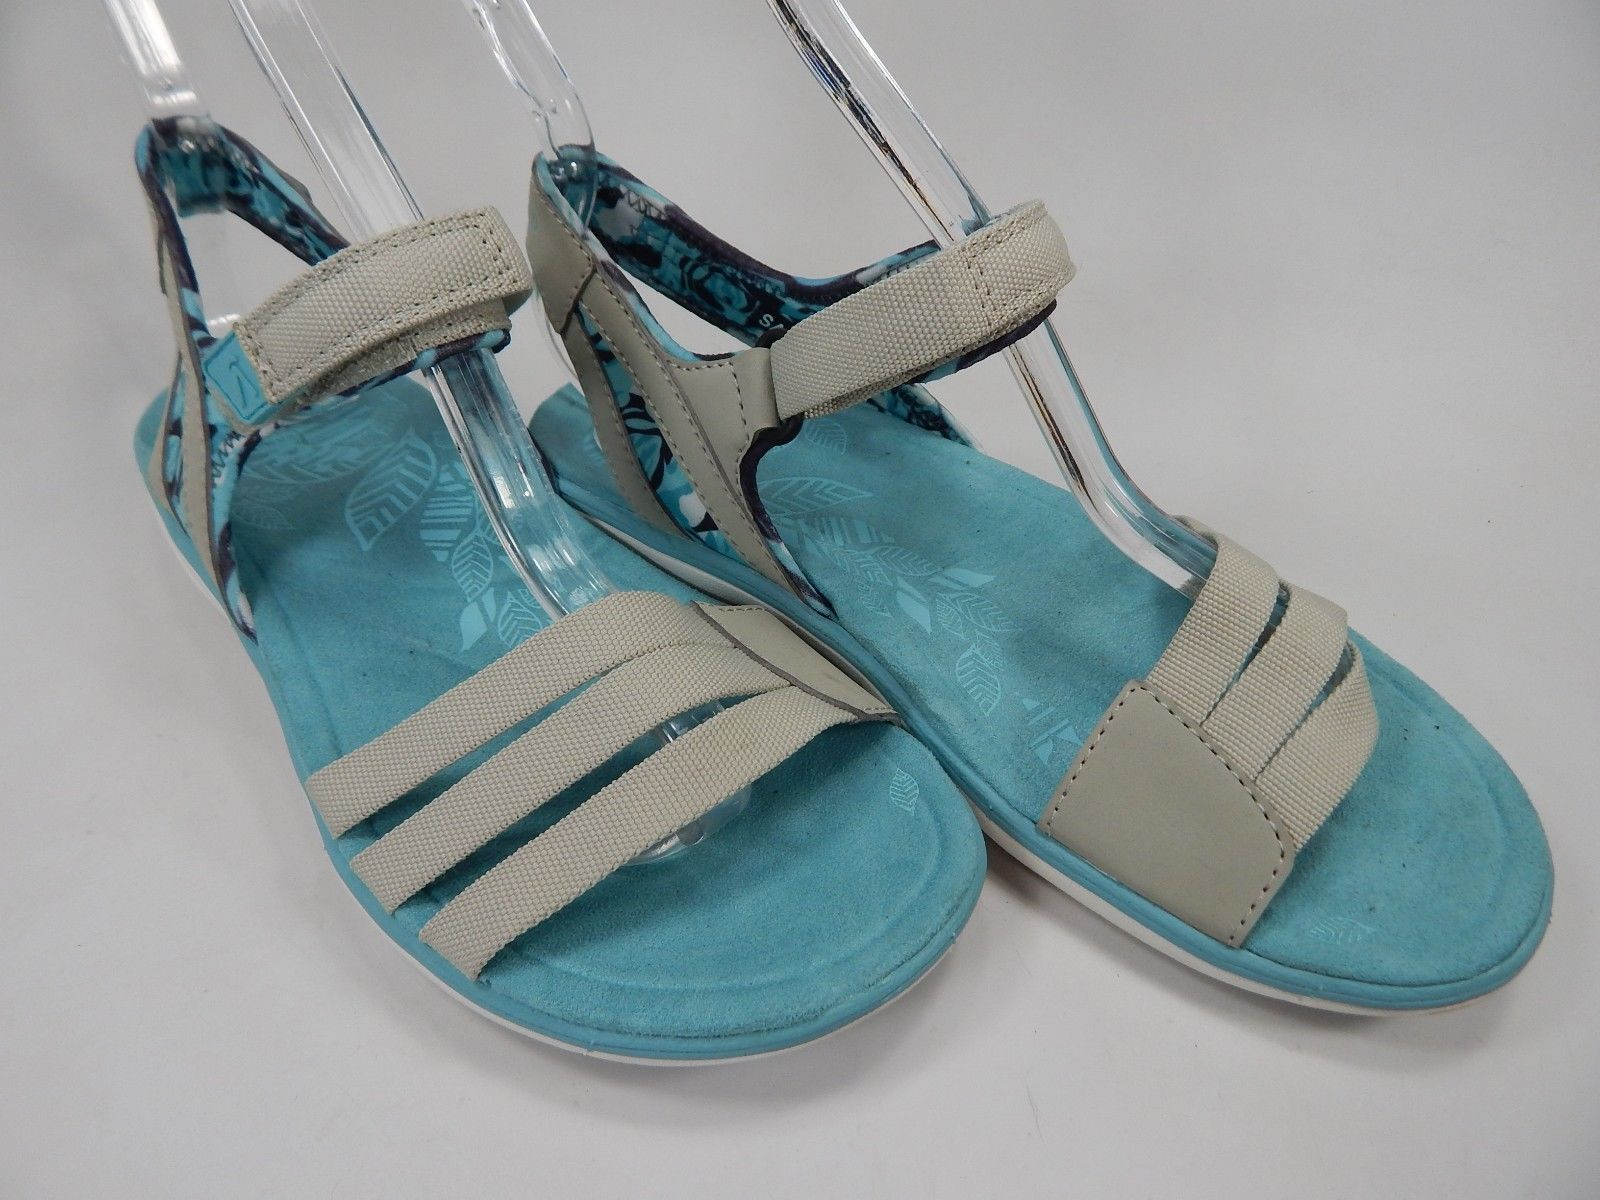 Keen Maya Strap Size US 7 M (B) EU 37.5 Women's Sports Sandals Aqua Blue / Gray